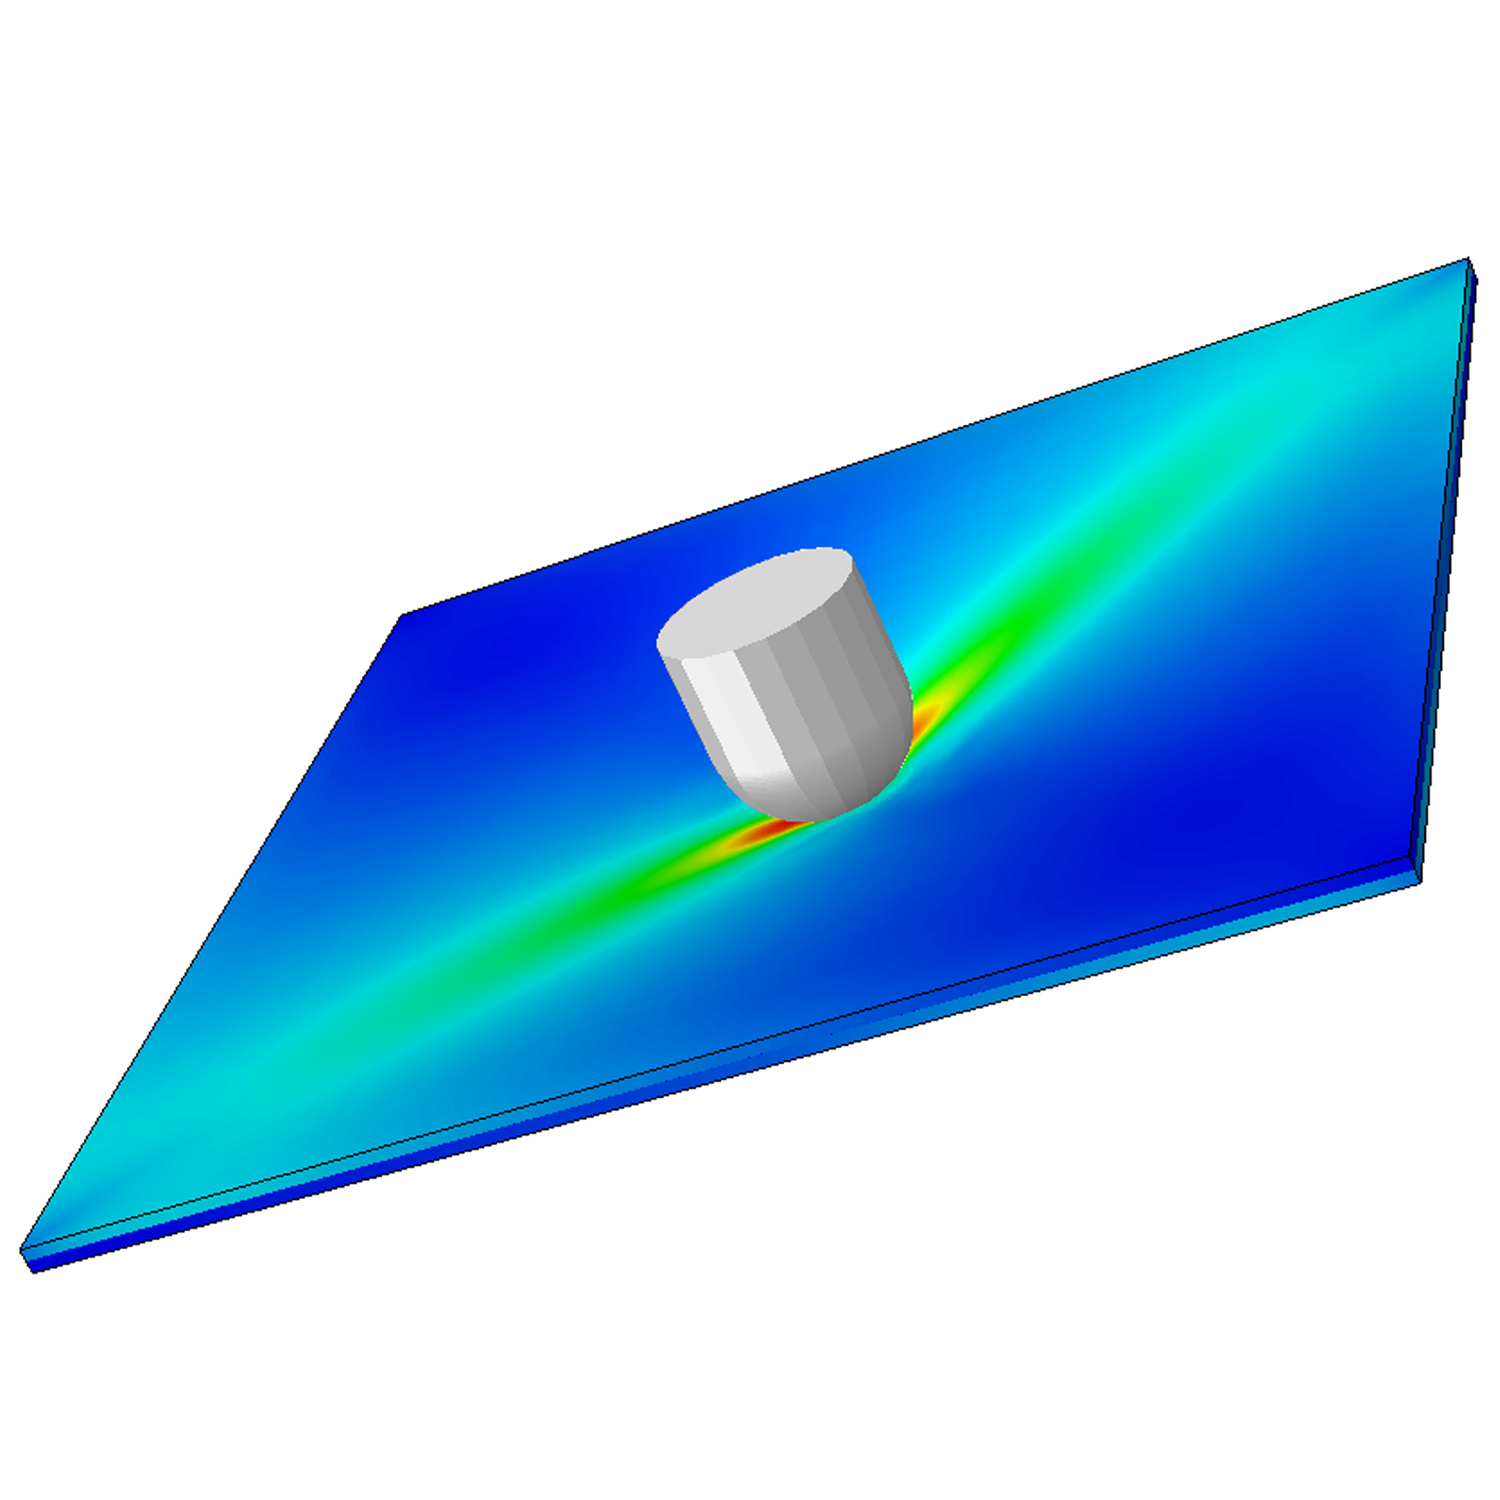 Simulation of a low velocity imapct